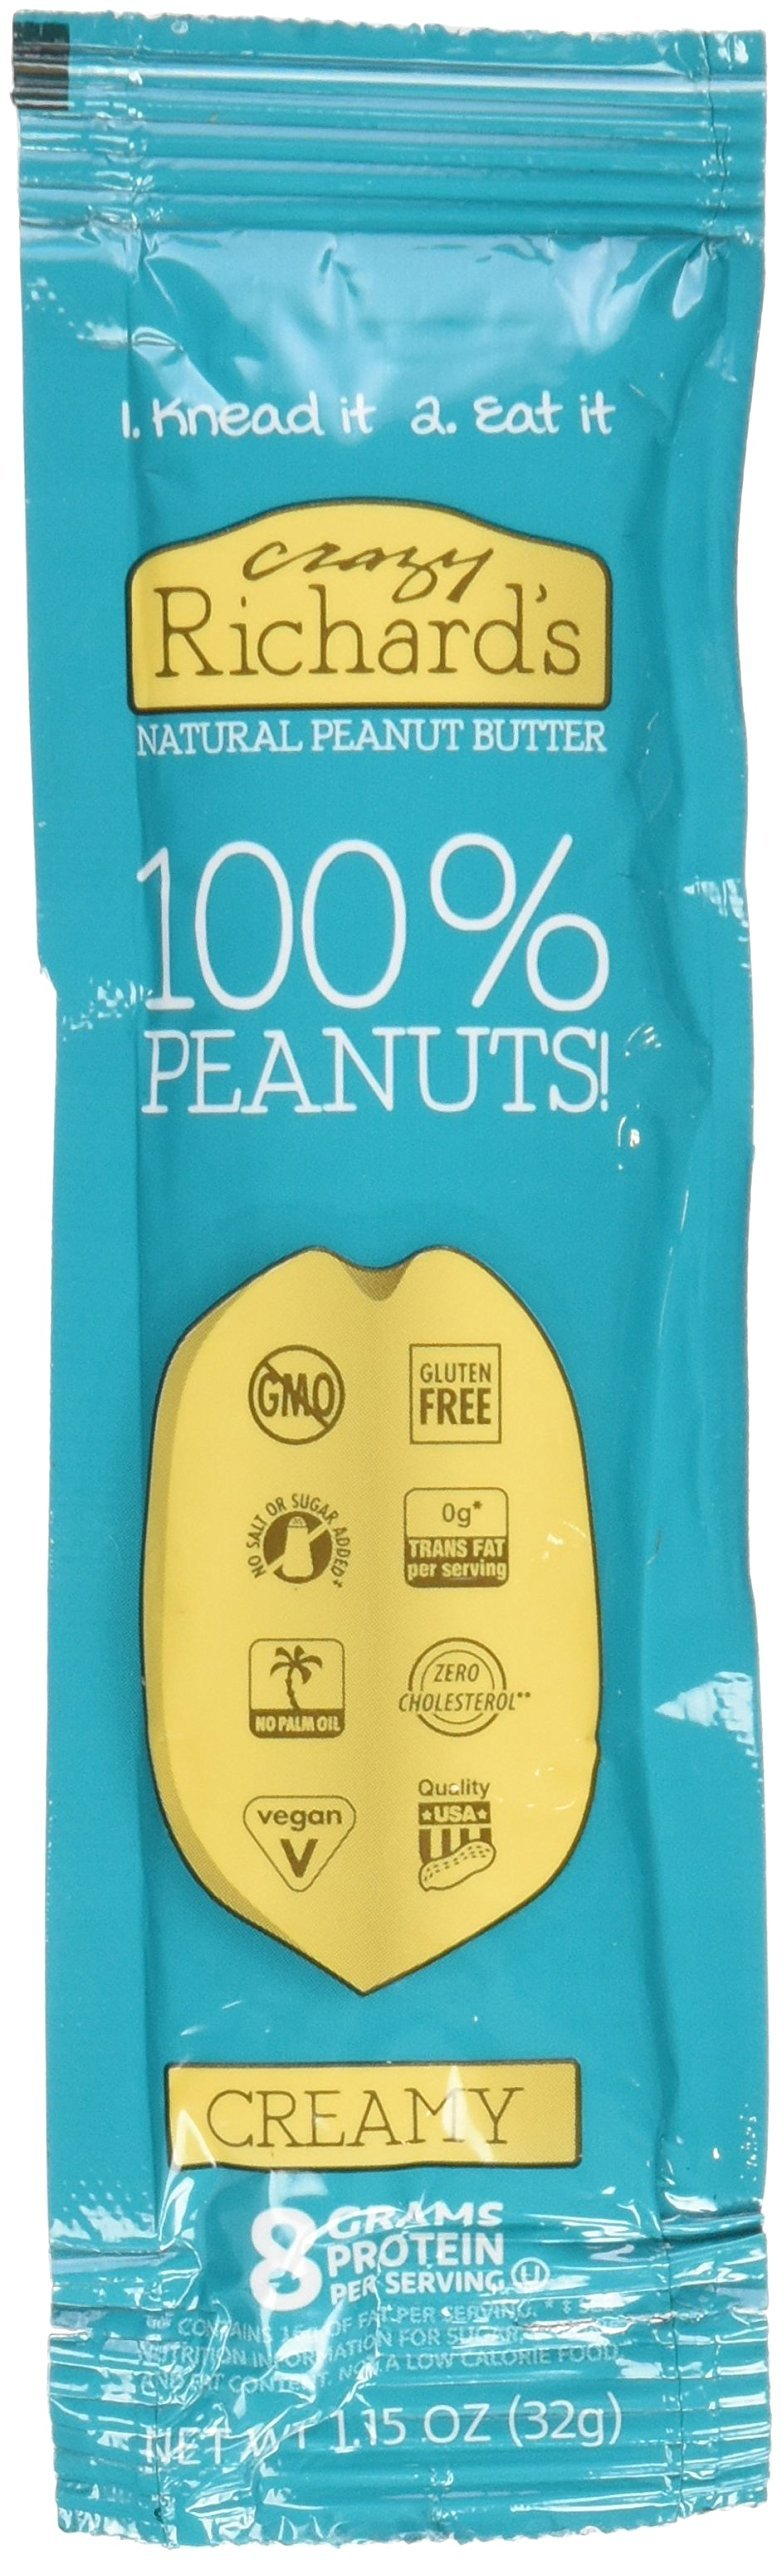 Crazy Richards 100% Natural Creamy, Squeeze Packs, 1.15 oz, 8 Count